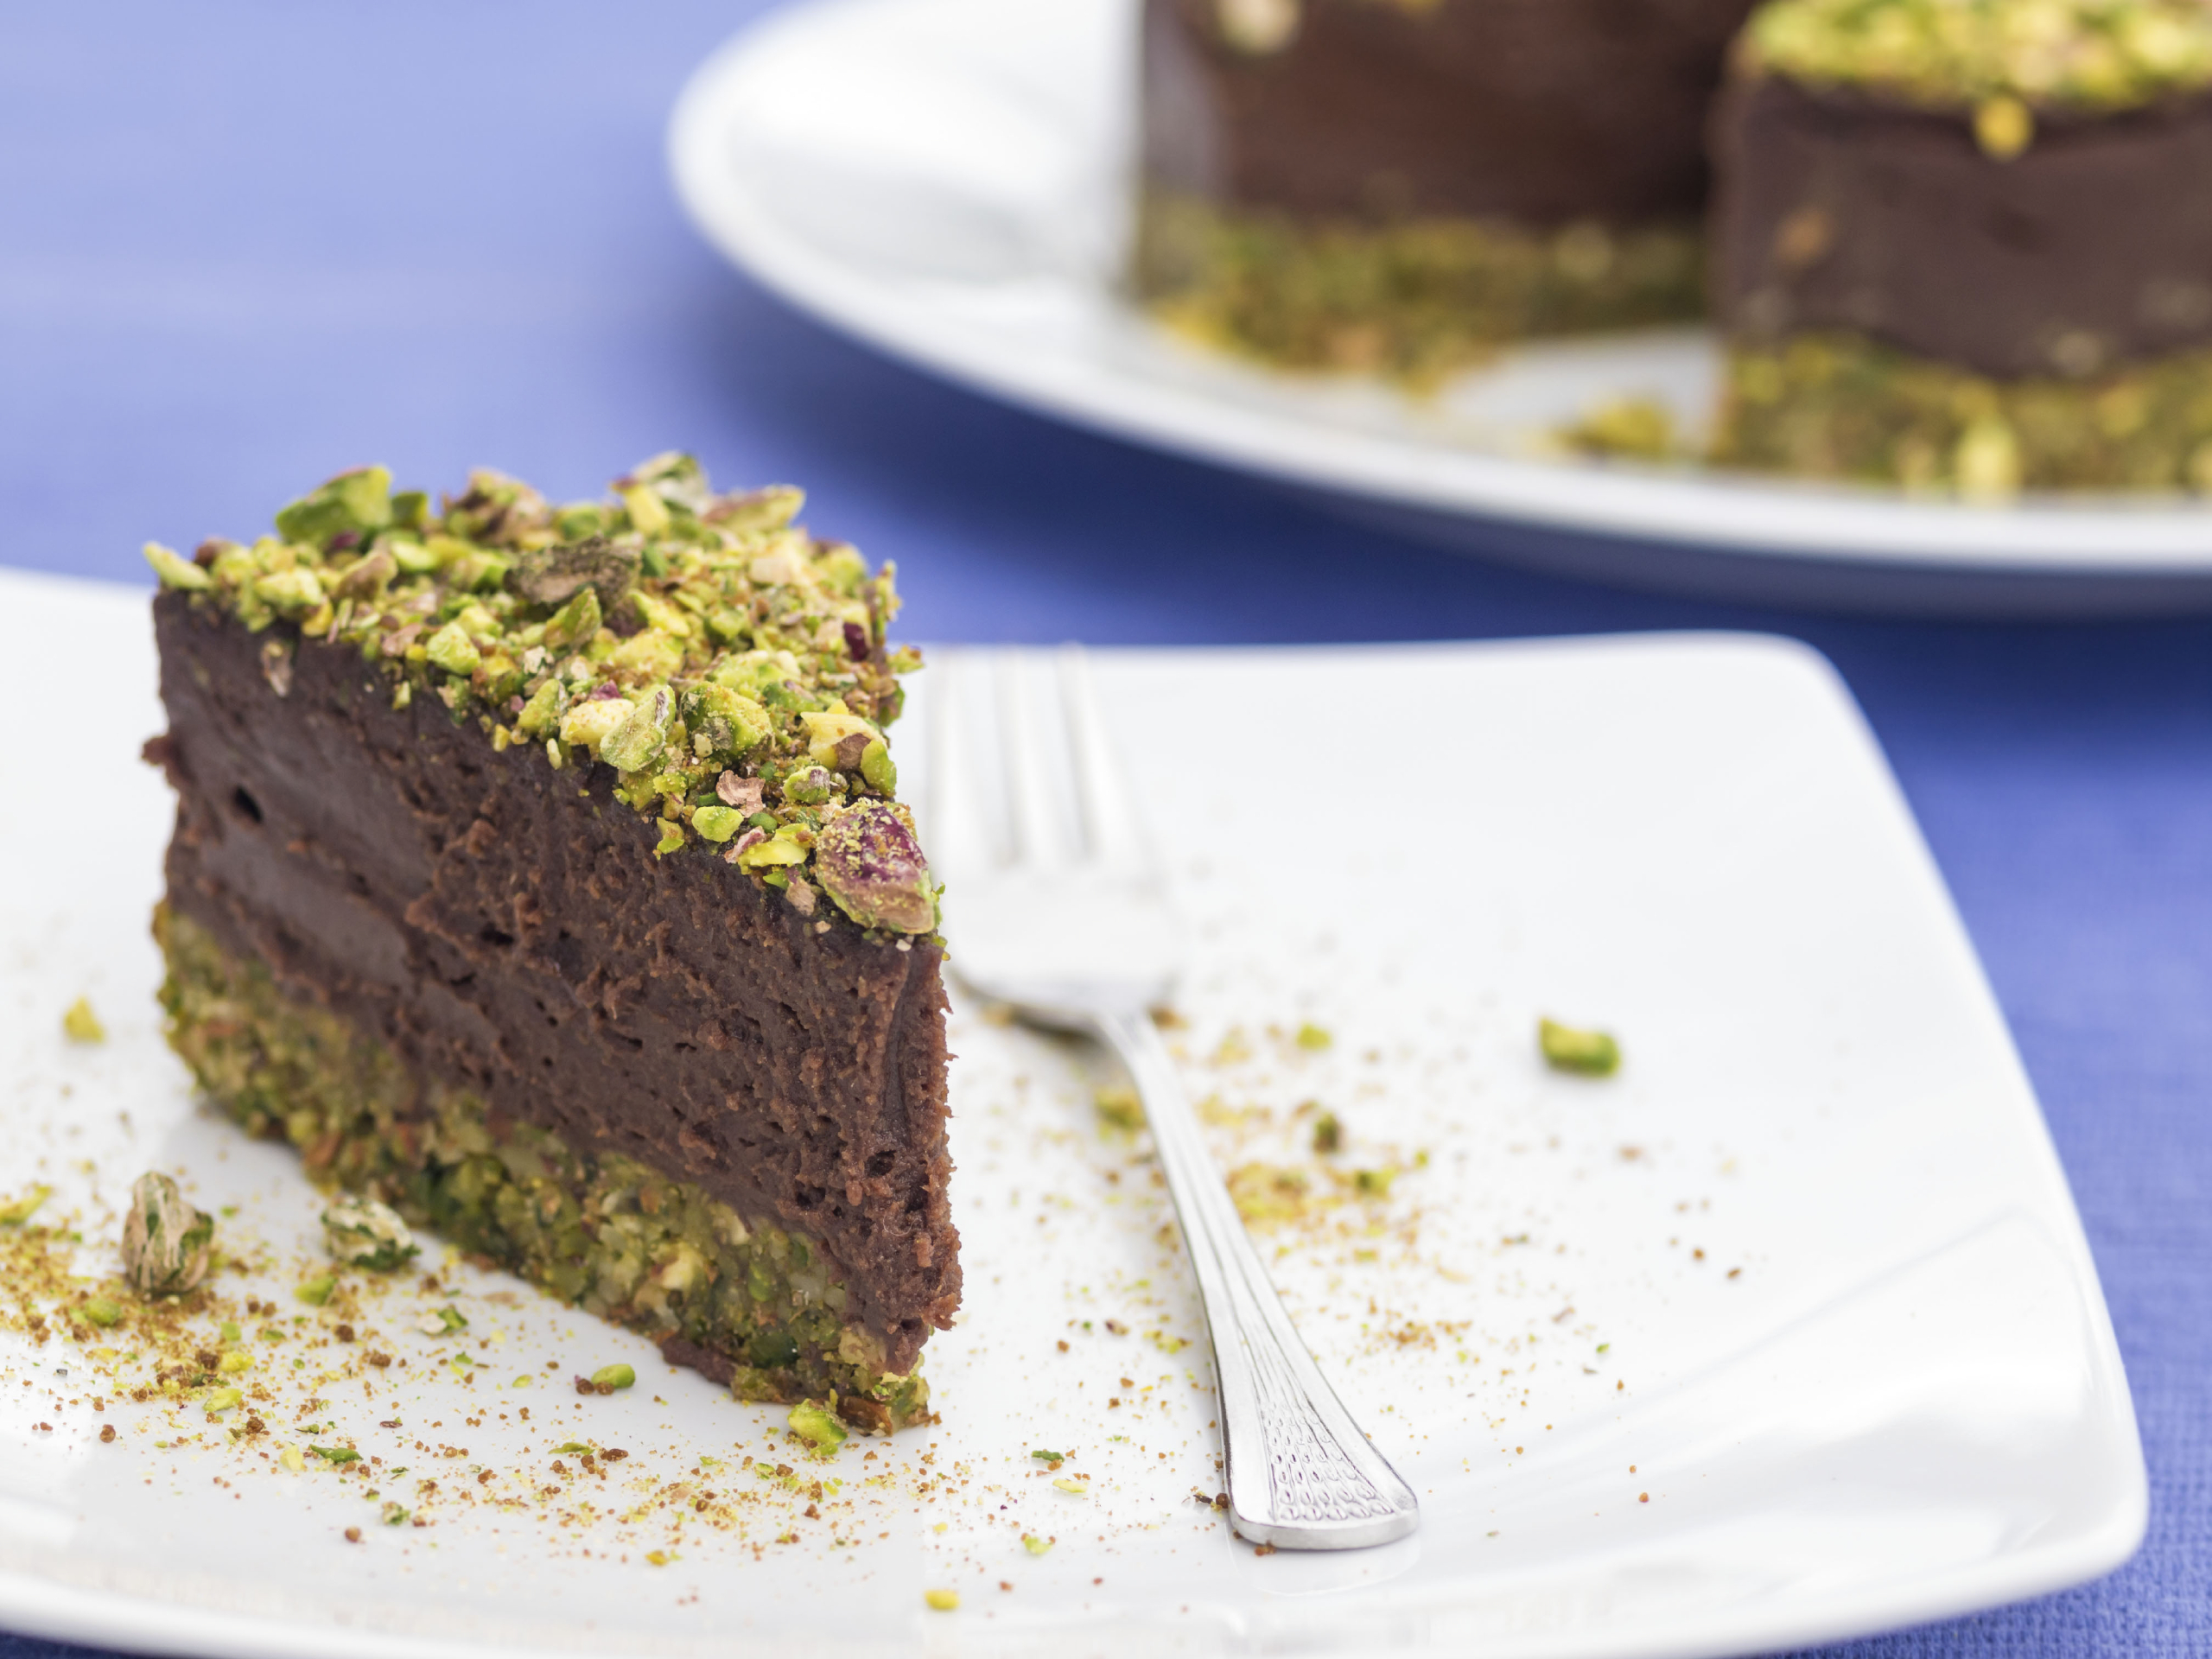 <strong>Make a chocolate cake using avocado</strong>